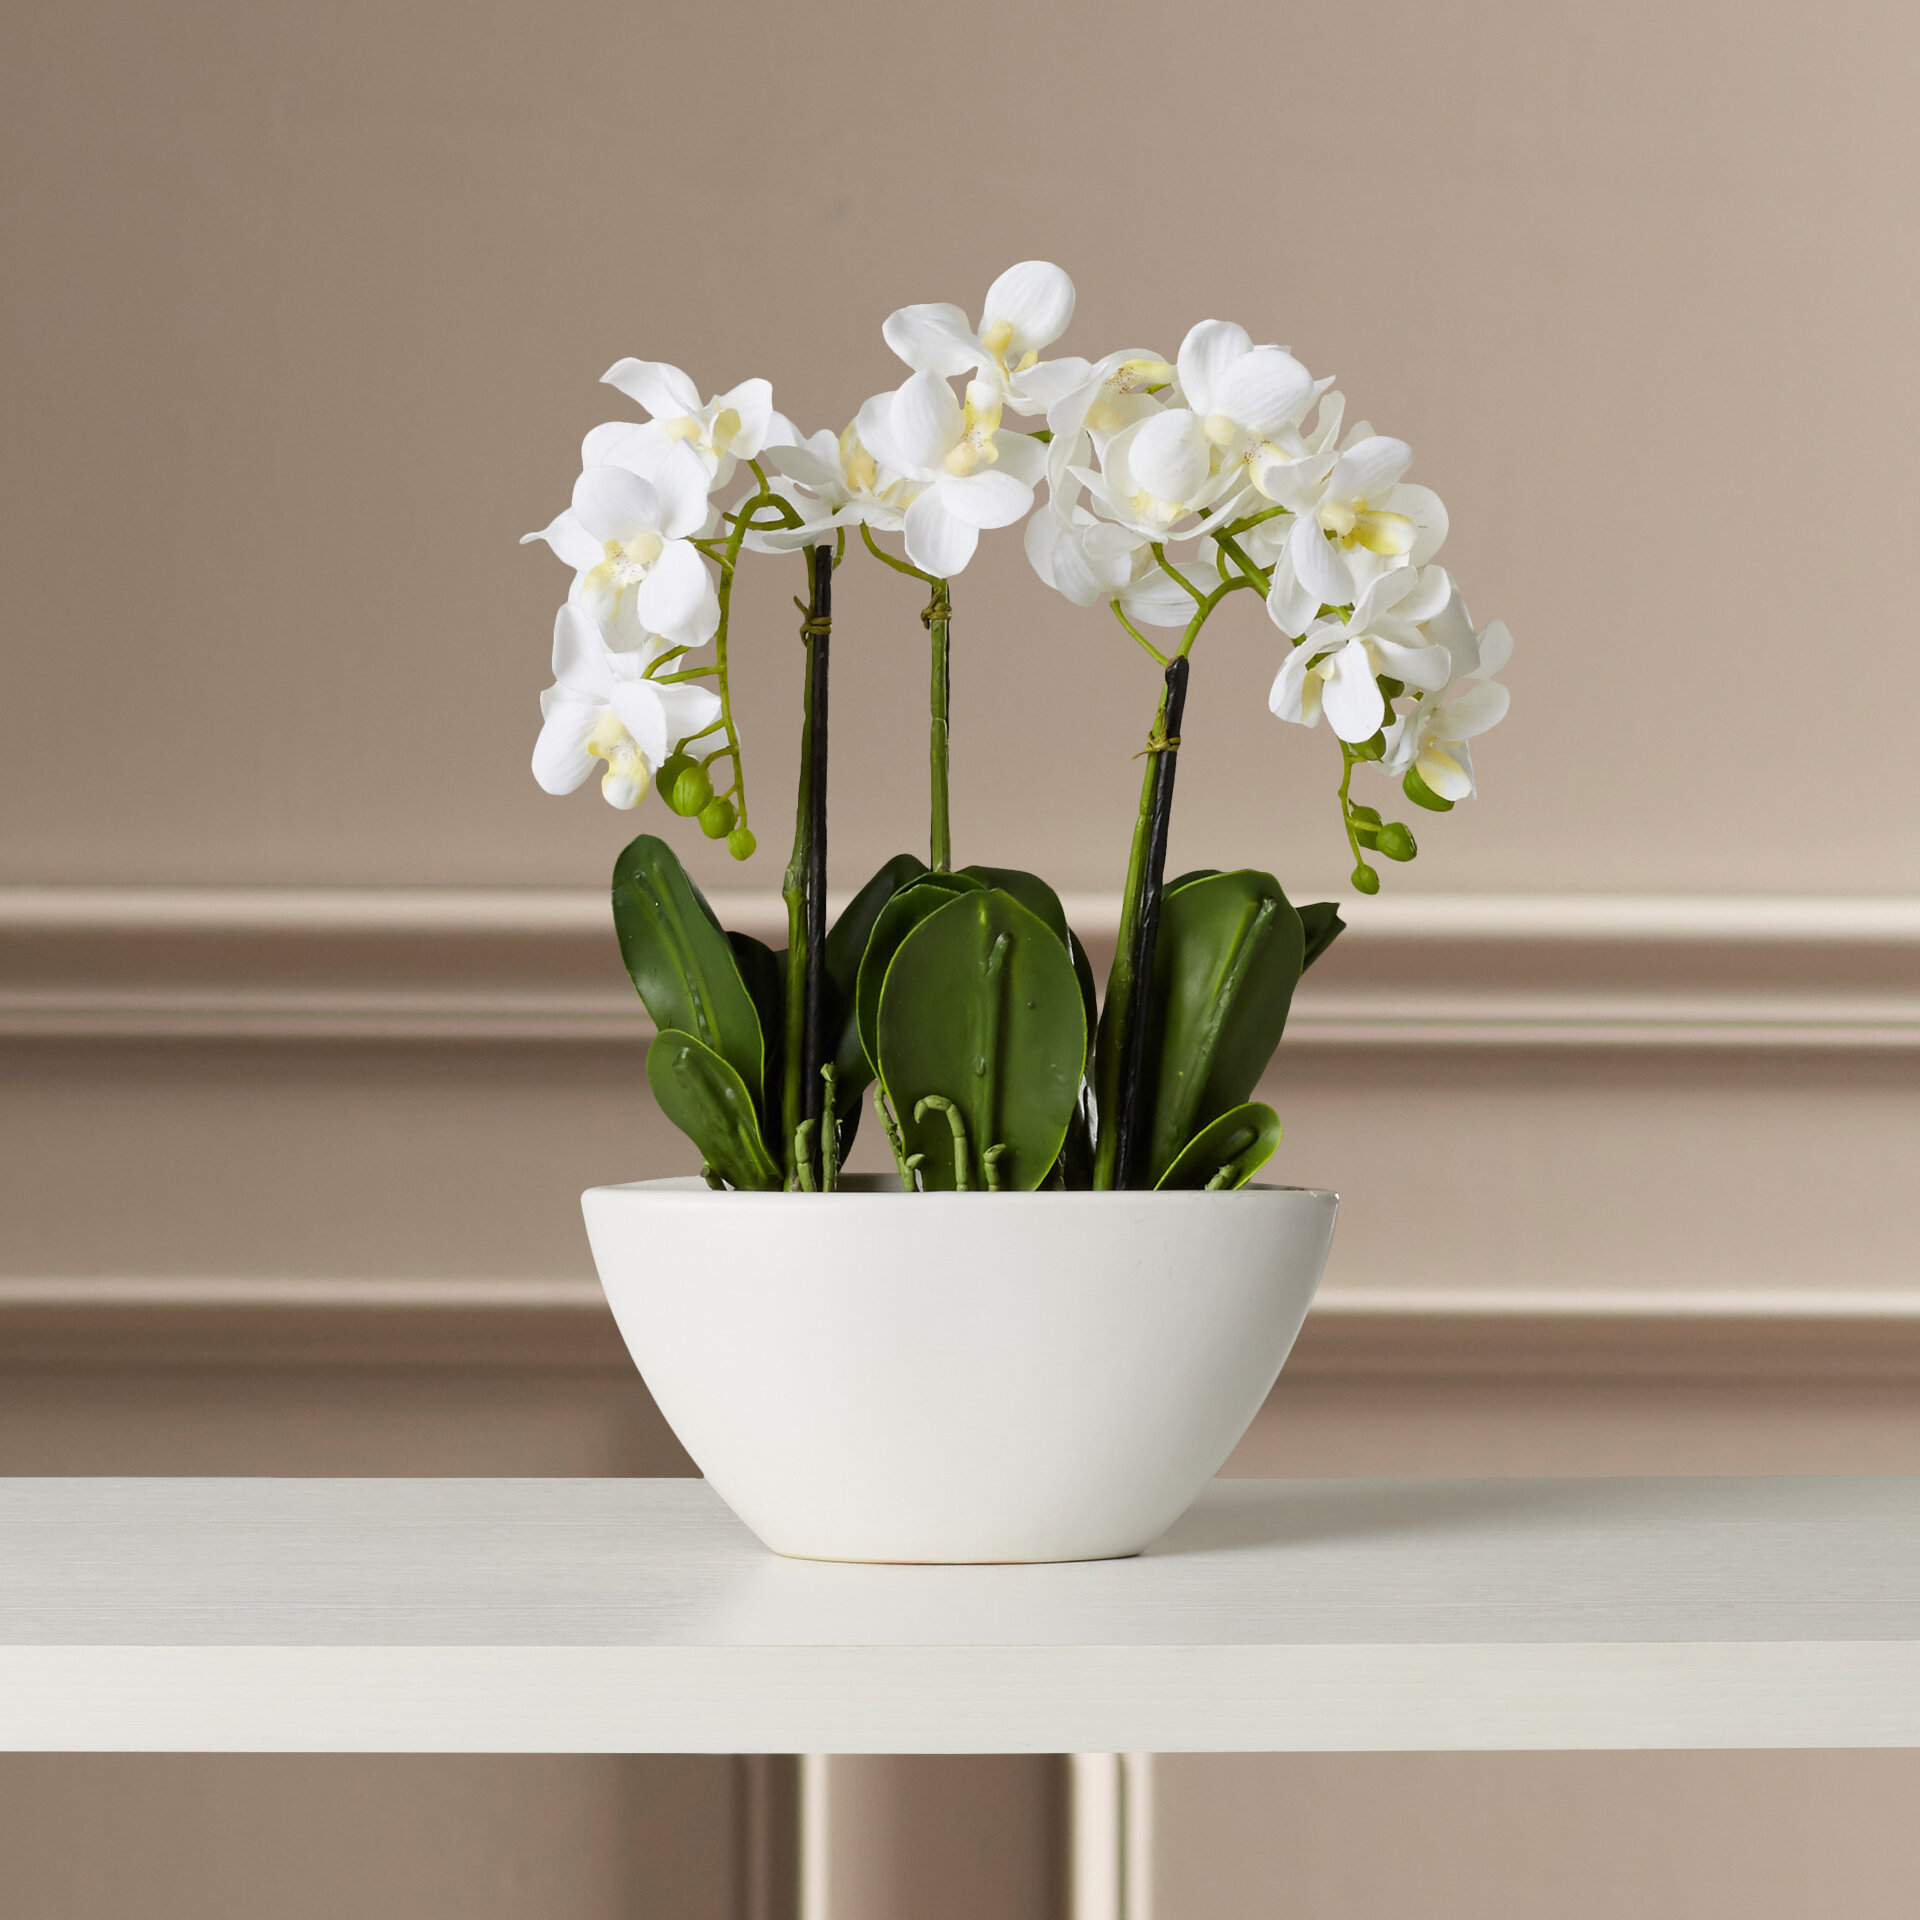 Latitude Run Orchid Centerpiece In Pot Reviews Wayfair